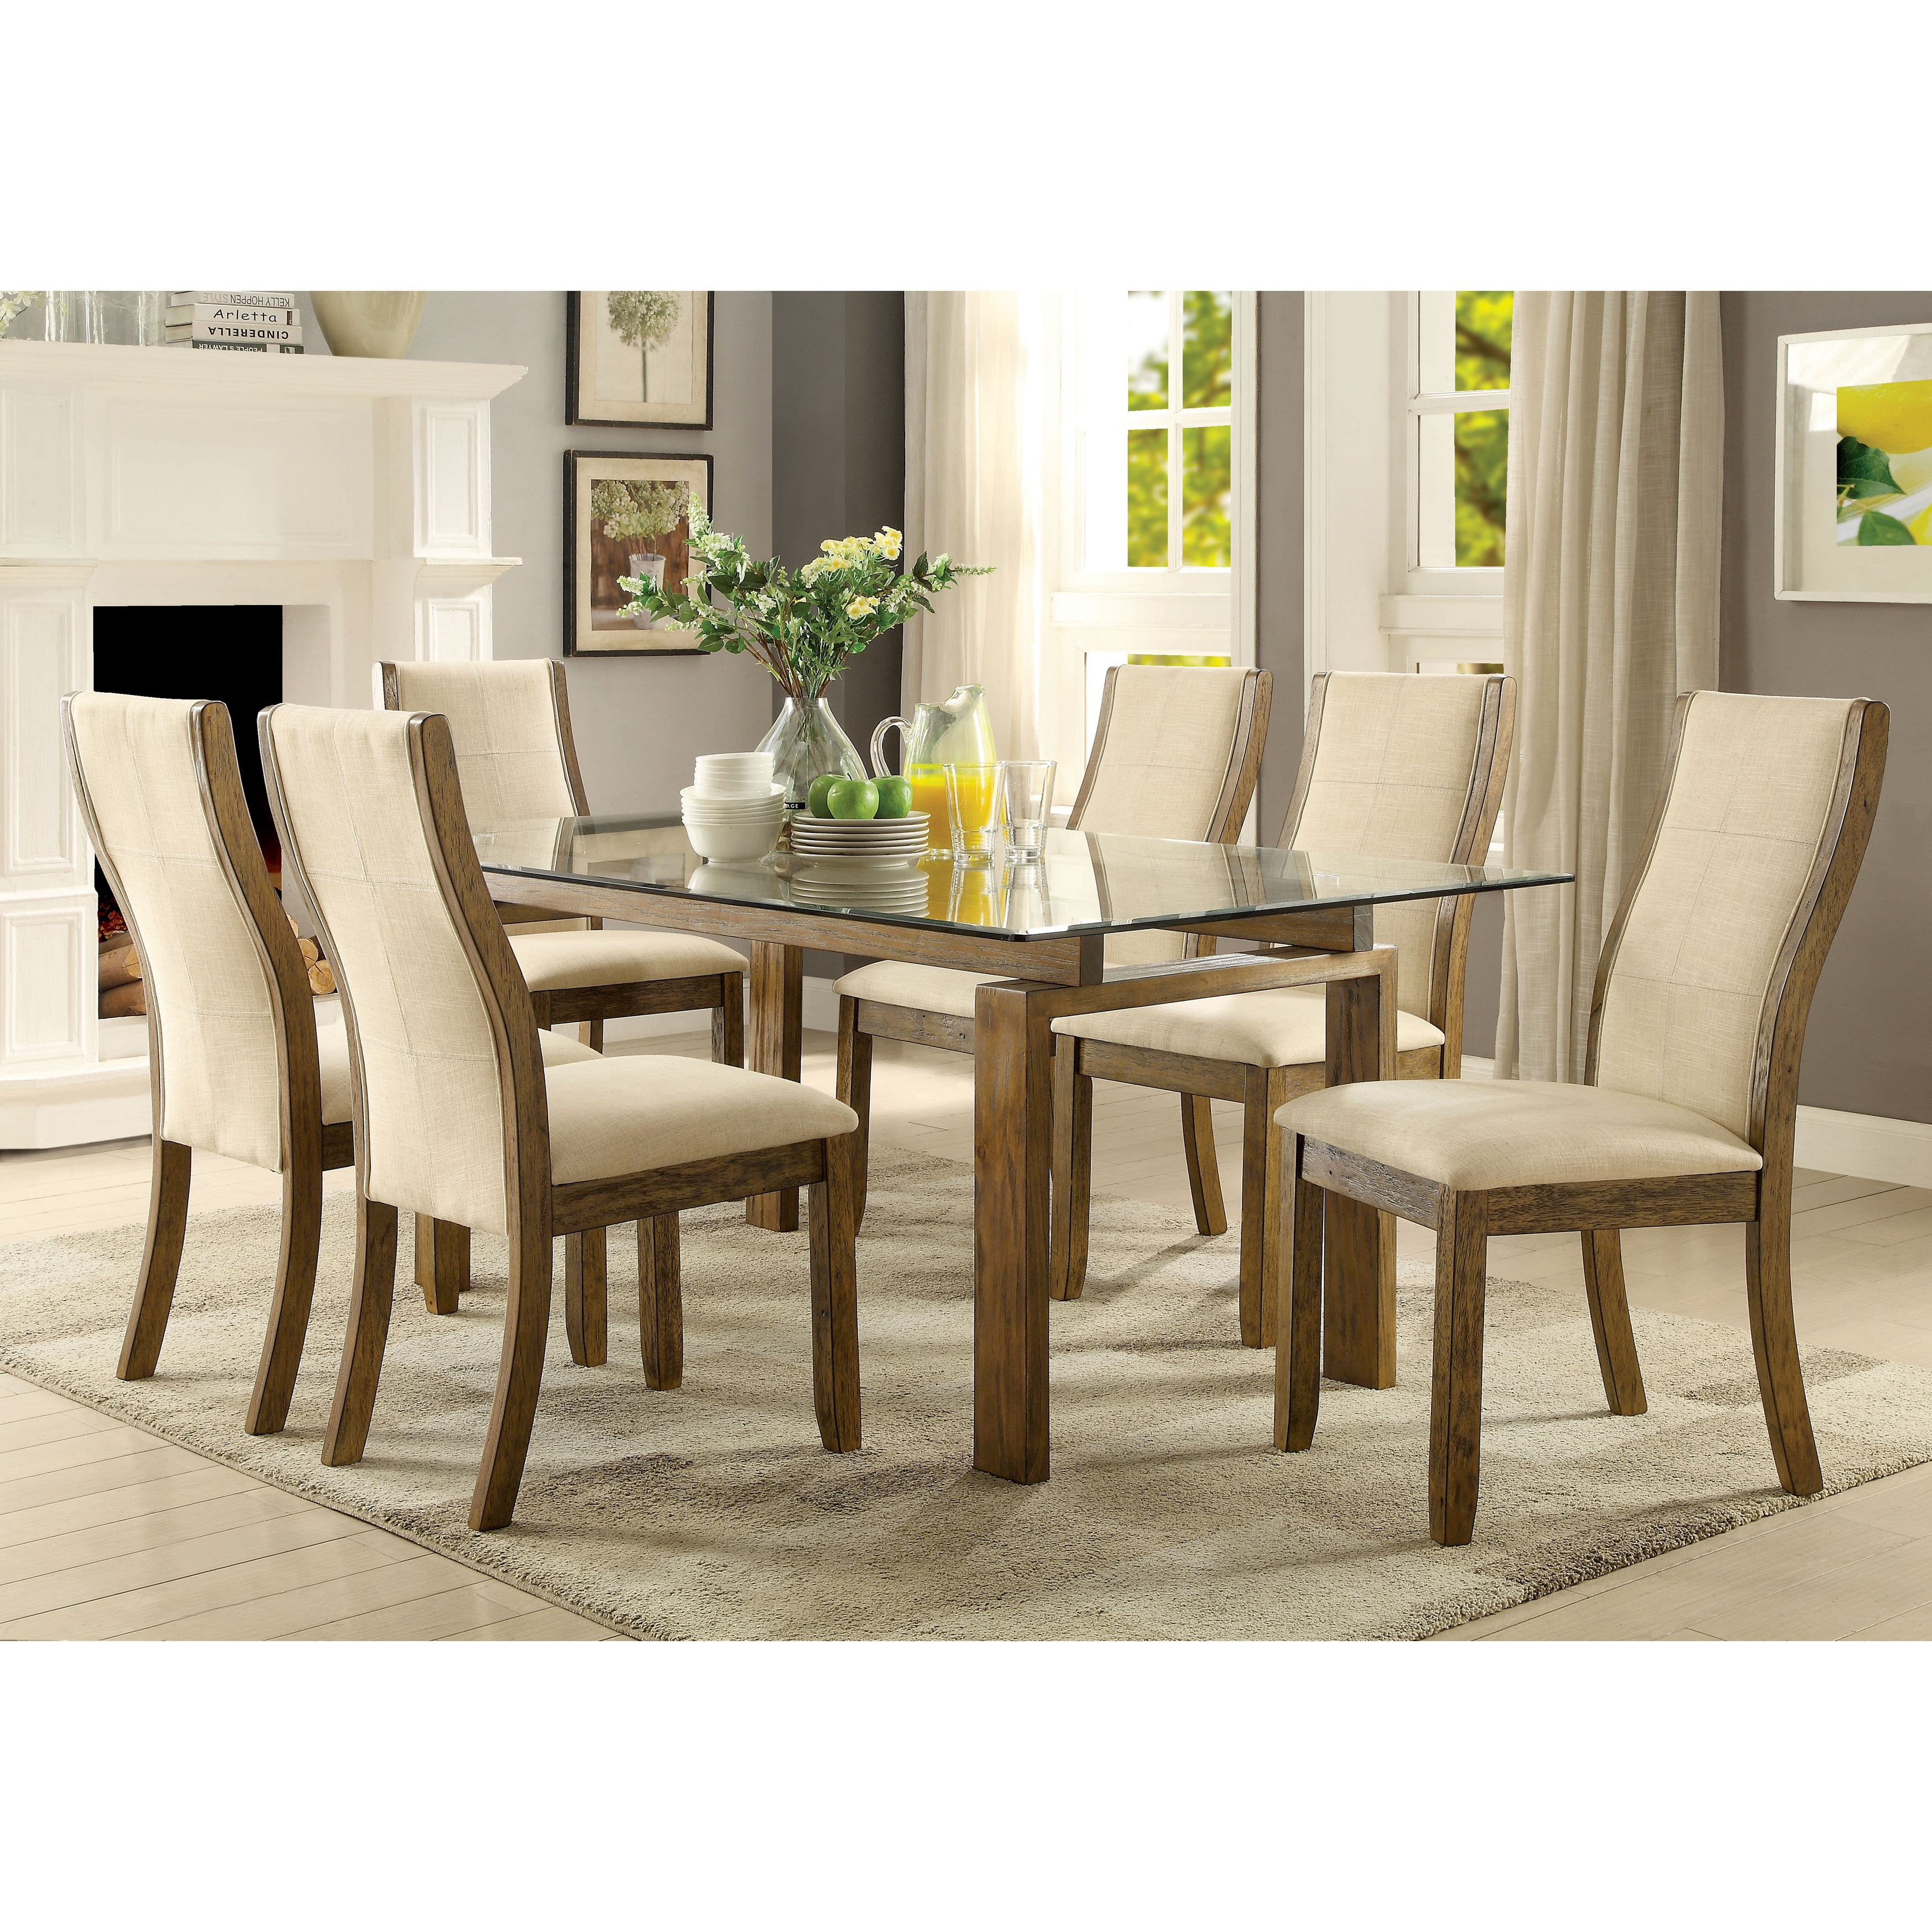 Superior Furniture Of America Lenea Contemporary 7 Piece Oak Dining Set   Free  Shipping Today   Overstock   23960985